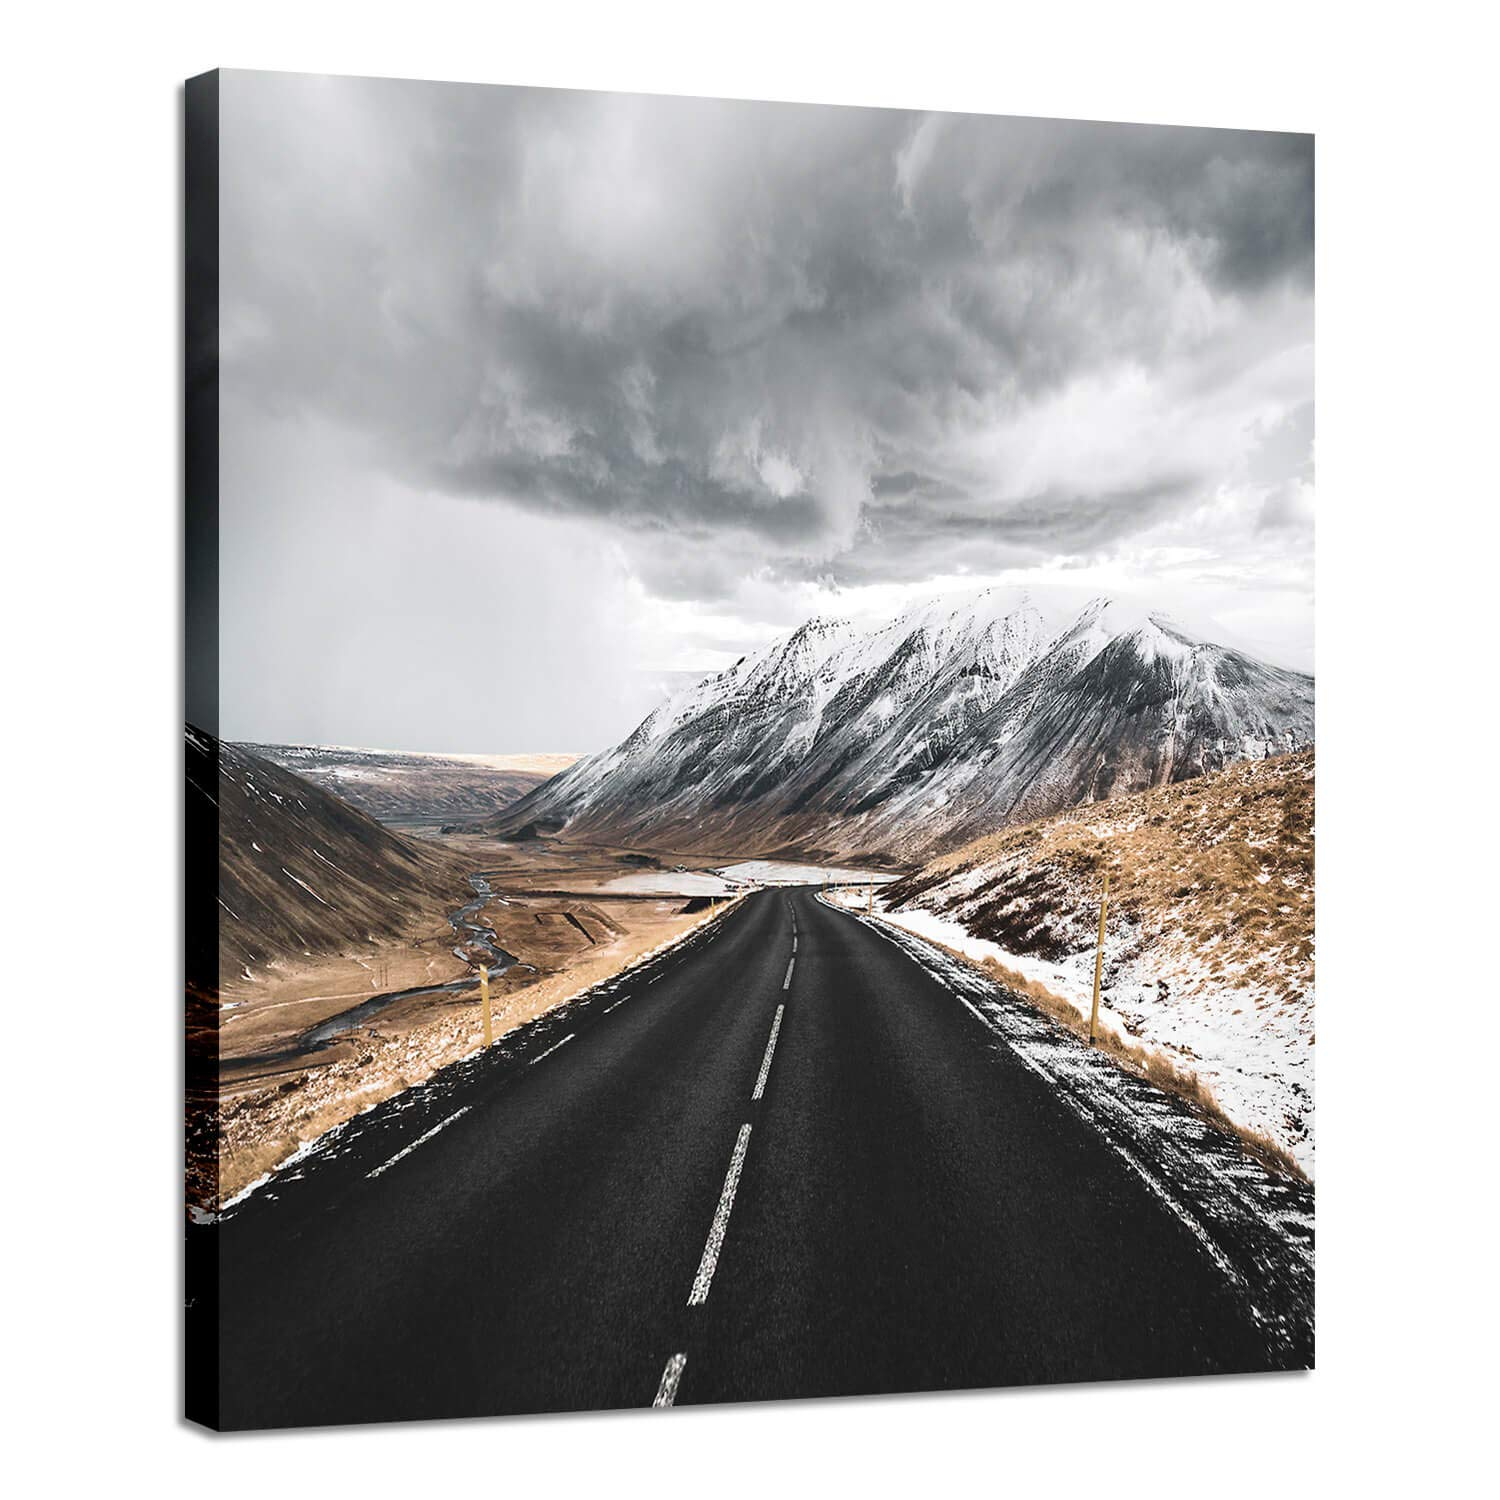 Landscape Rustic Road Wall Art: Winter Roadway Runs Through The Mountains Photographic Print on Canvas Modern Home Decor